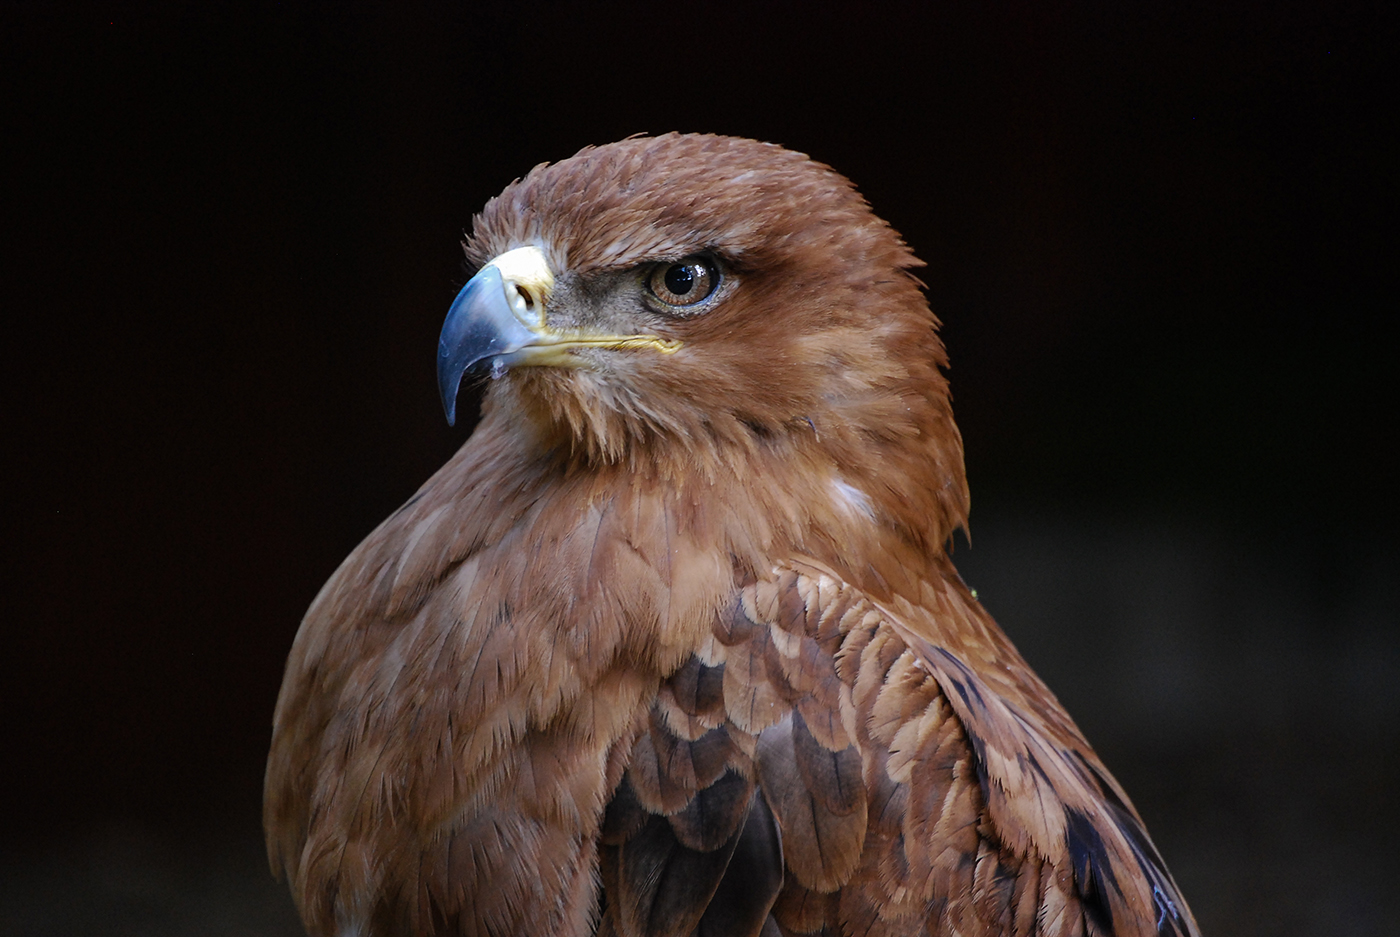 First 'Harris Hawk' by Roy Hilliard